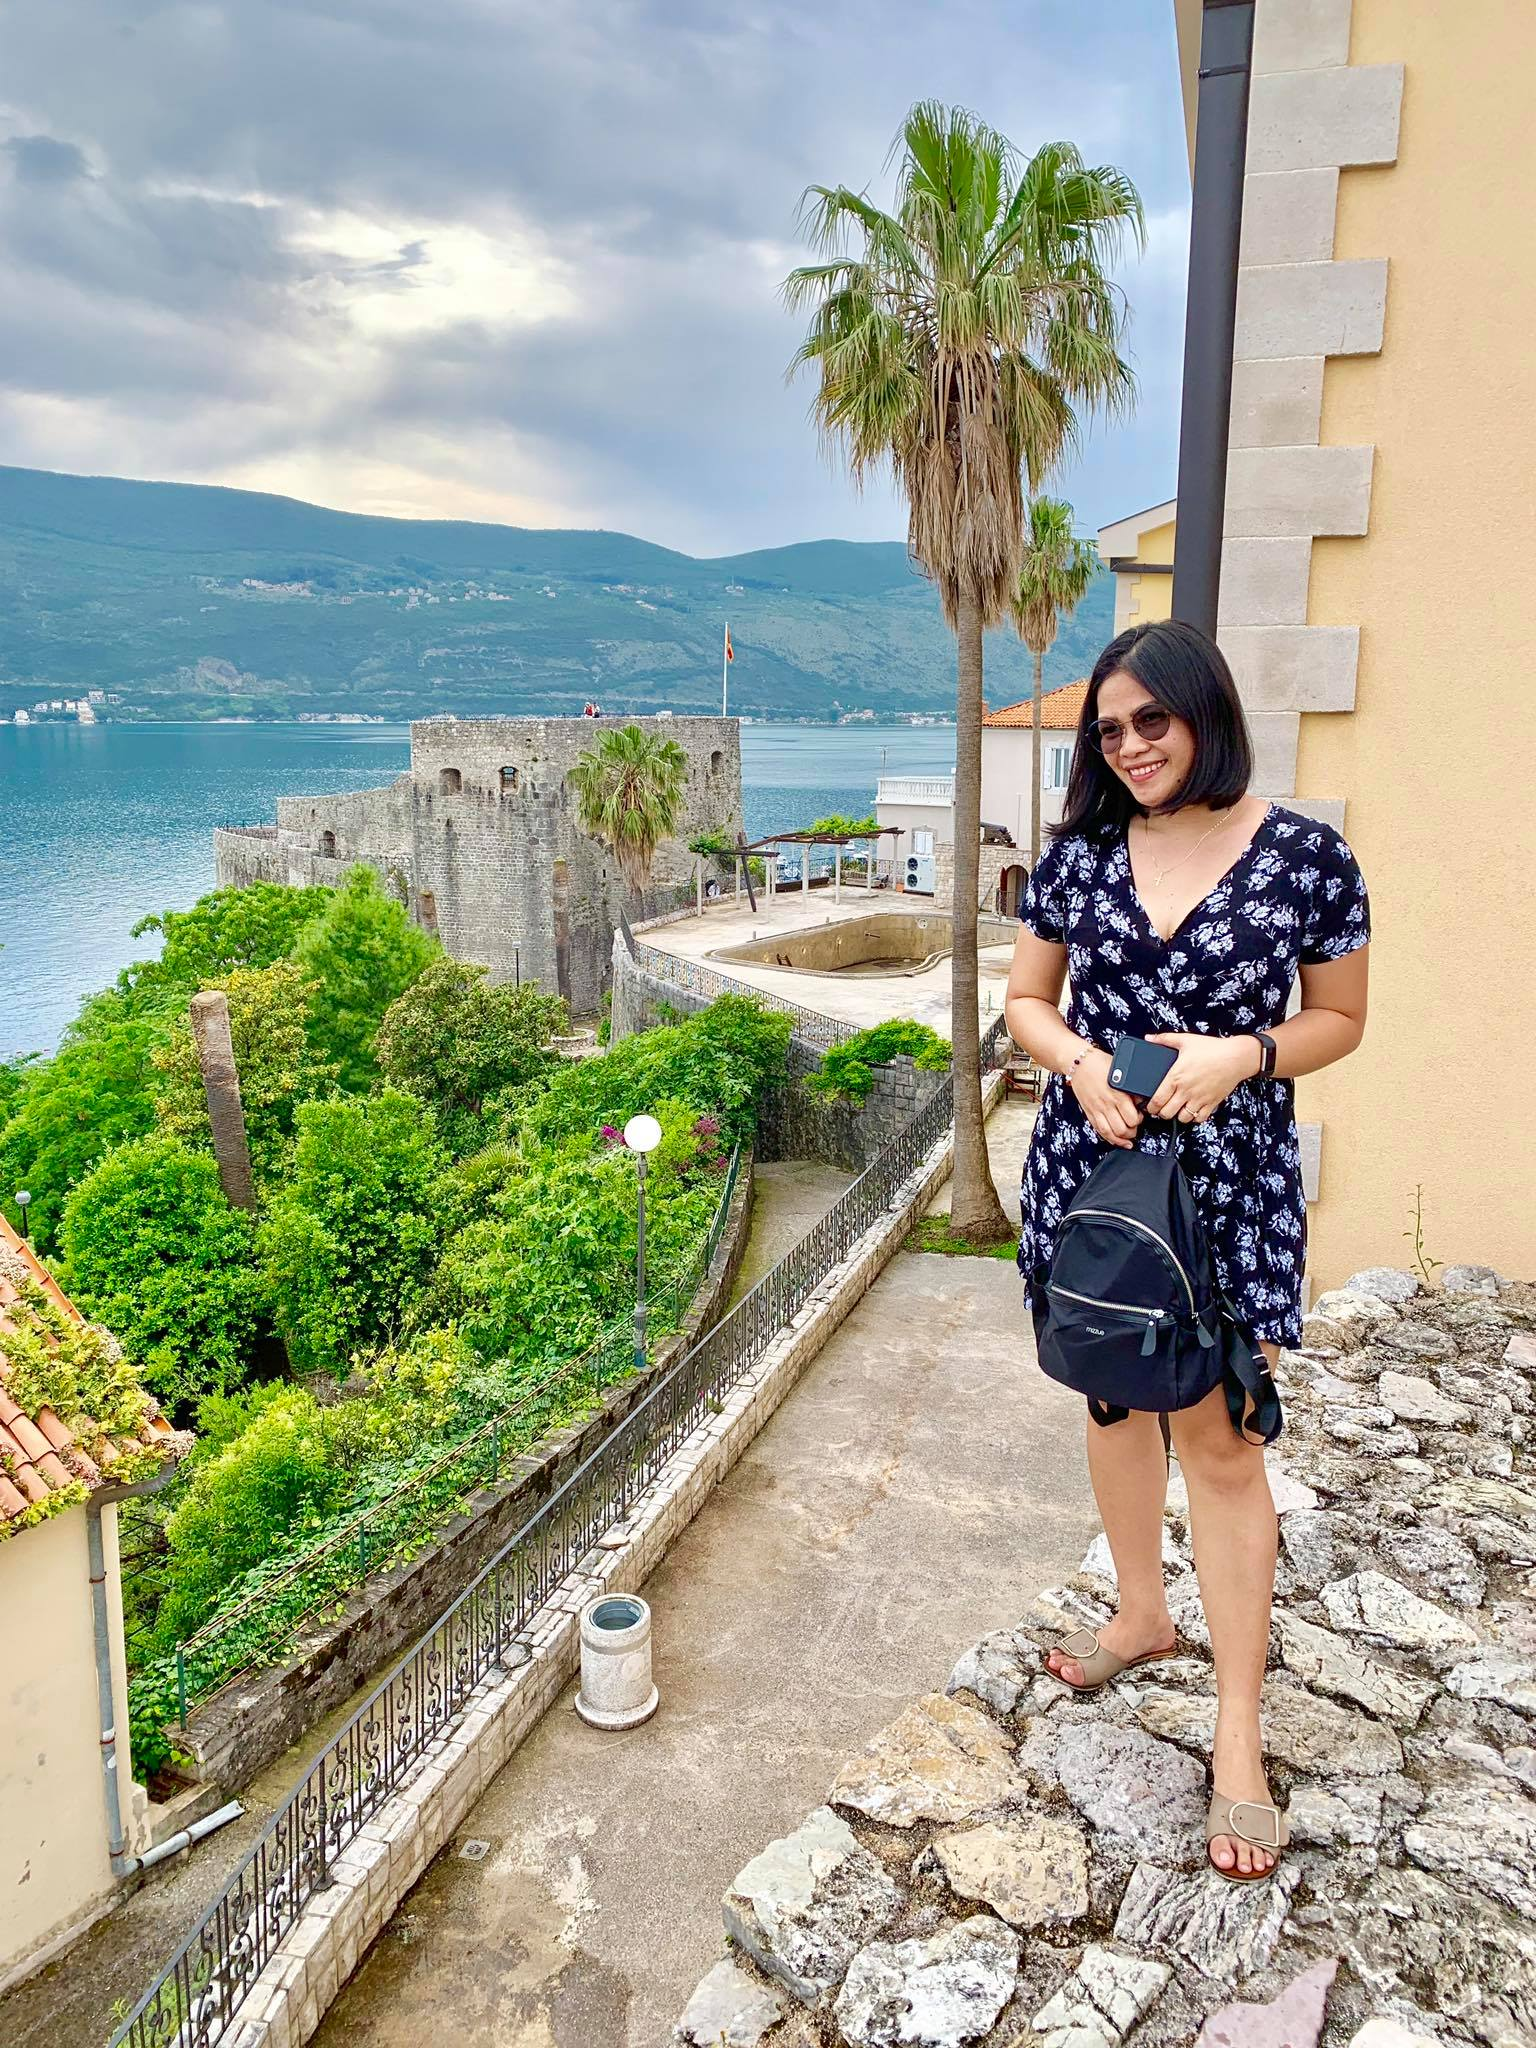 Expat Life in Montenegro Day 3 We have our first visitor already in our new home here in Herceg Novi9.jpg